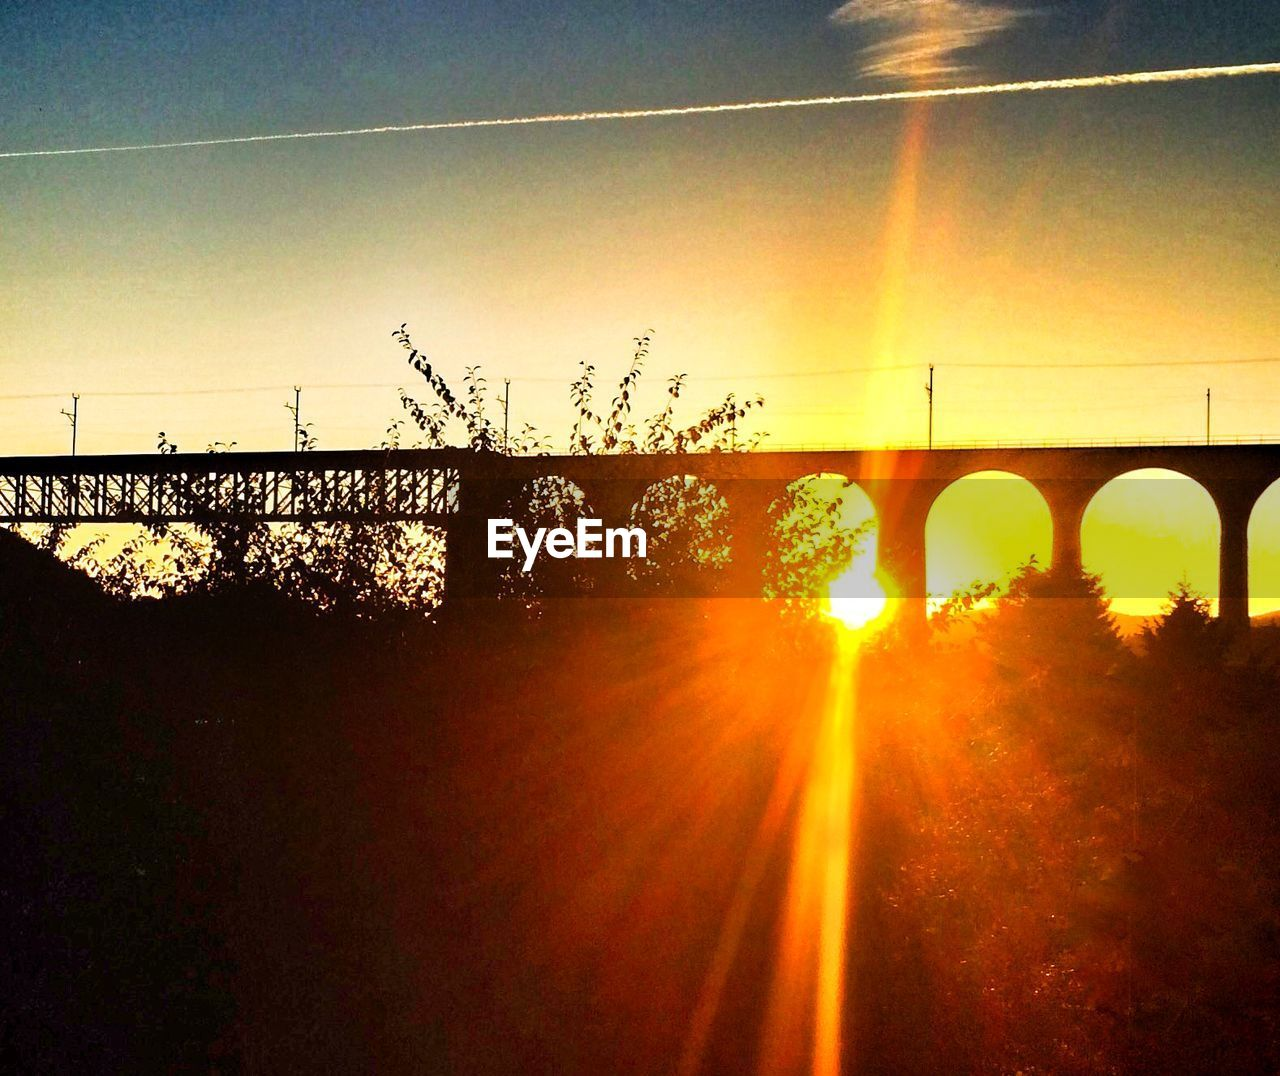 bridge - man made structure, connection, sunset, sun, transportation, lens flare, sunbeam, sunlight, nature, silhouette, arch, built structure, architecture, sky, outdoors, no people, tree, bridge, clear sky, growth, day